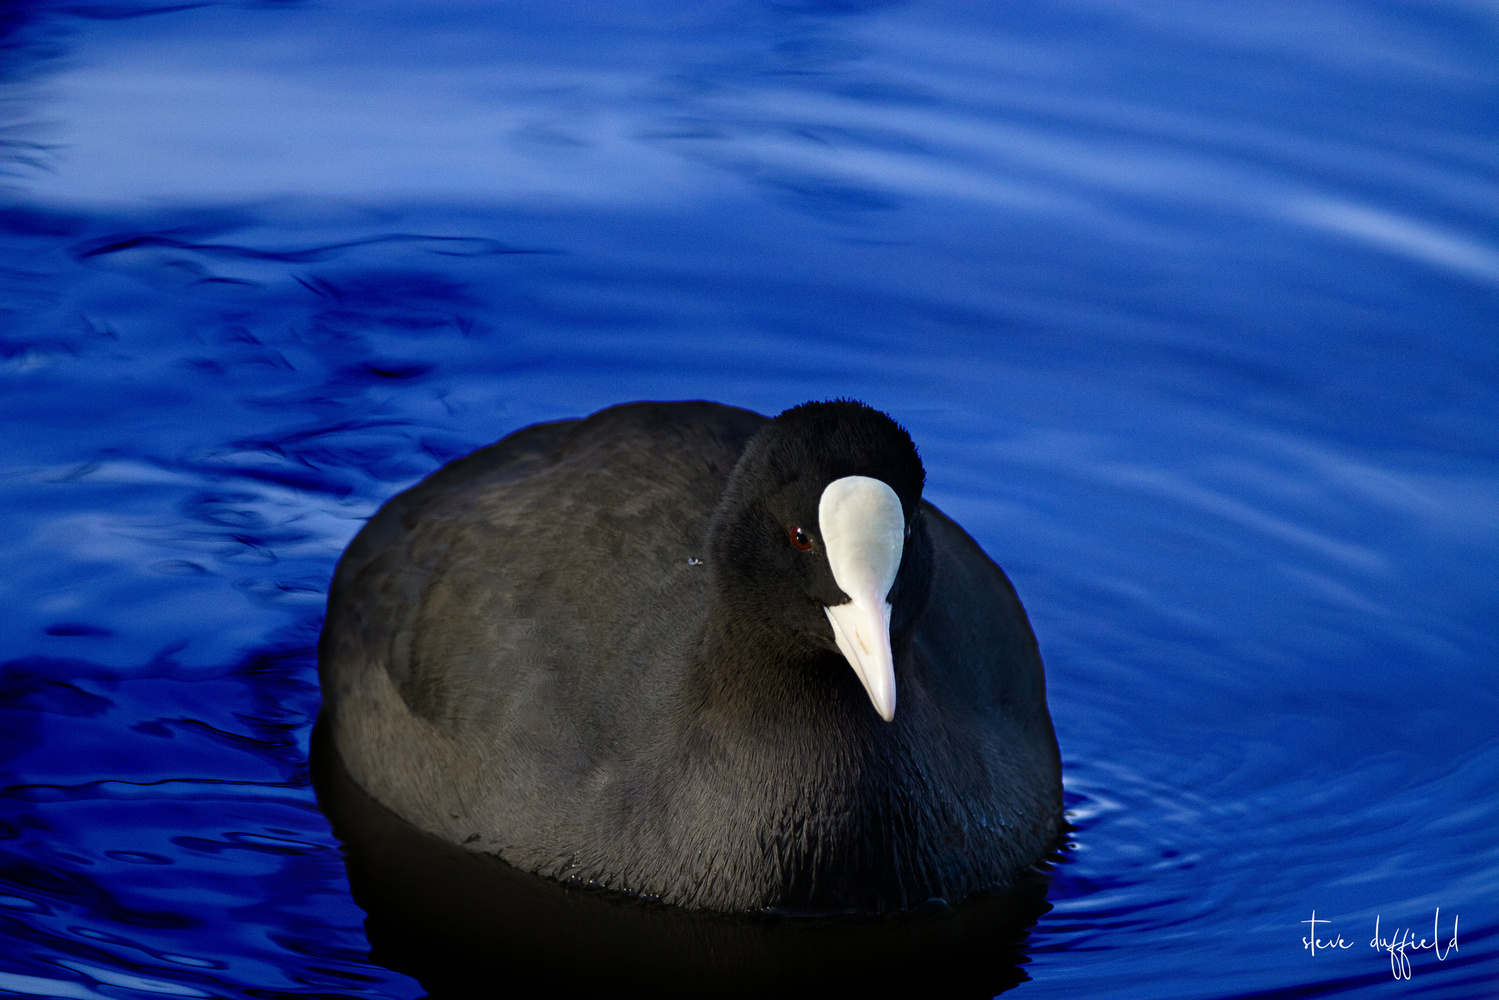 COOT by stephen duffield